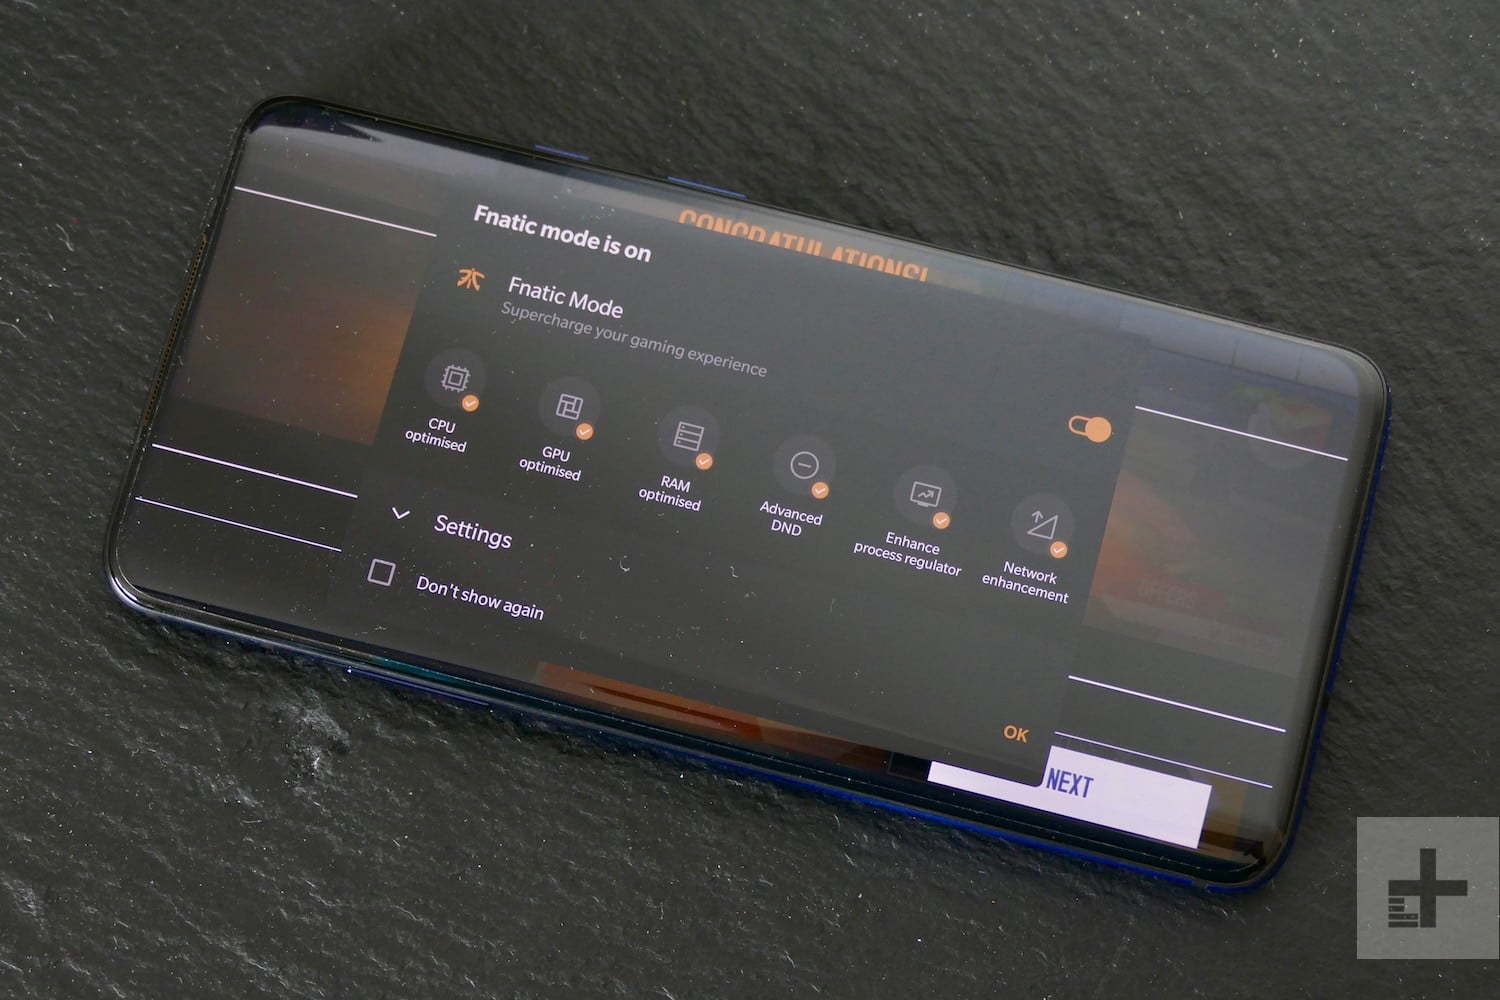 OnePlus 7 Pro: Key Settings to Change on Your New Phone